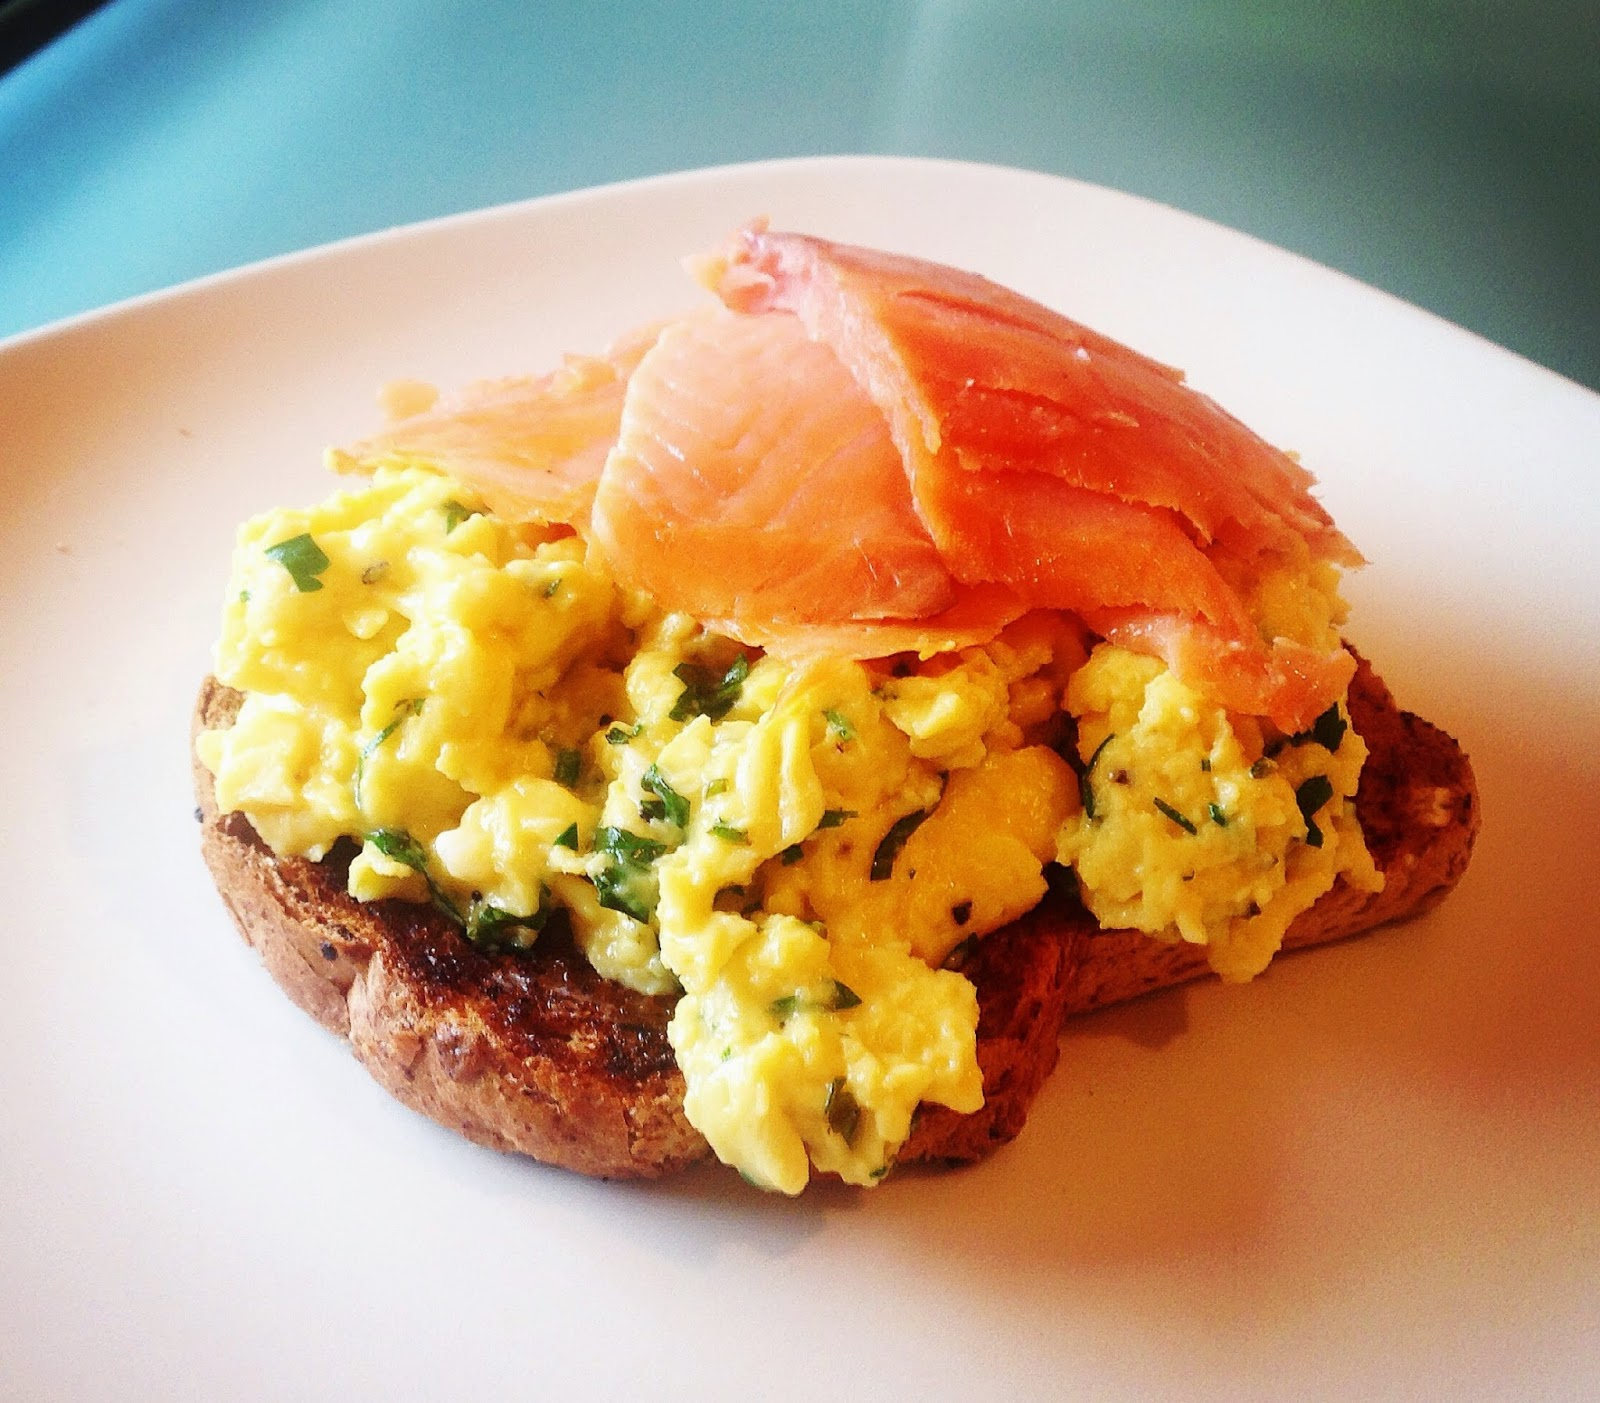 Herby Scrambled Eggs with Smoked Salmon